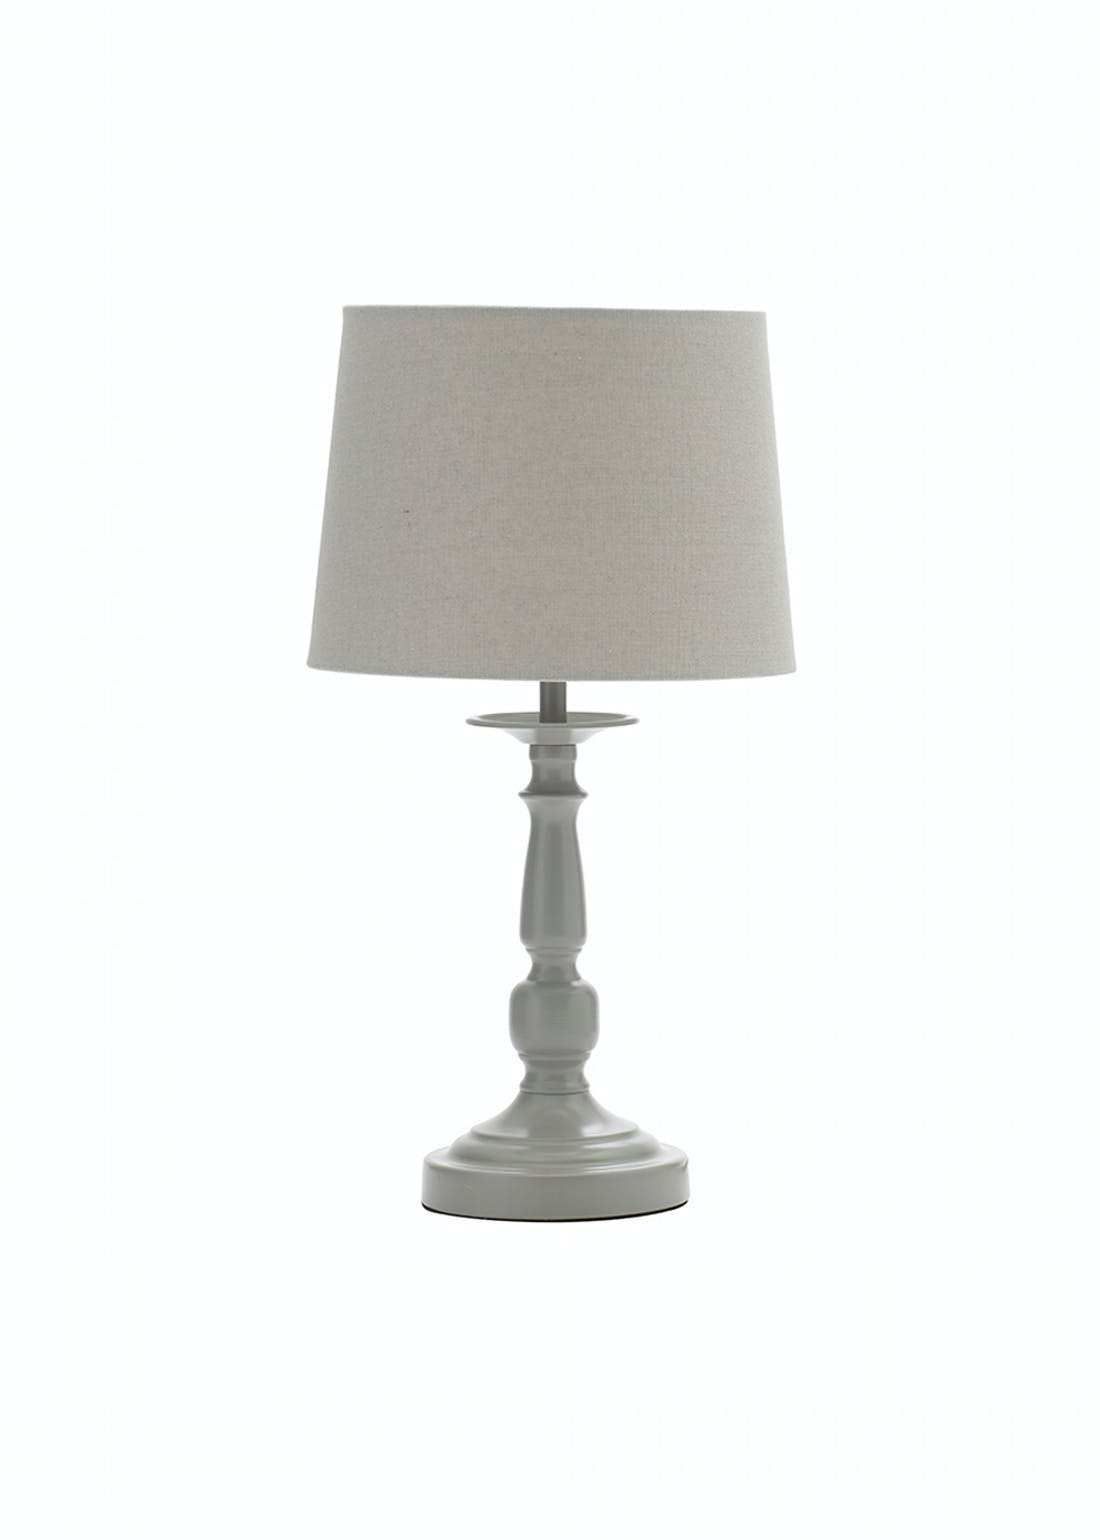 Traditional Table Lamp (H42.5cm x W23cm)